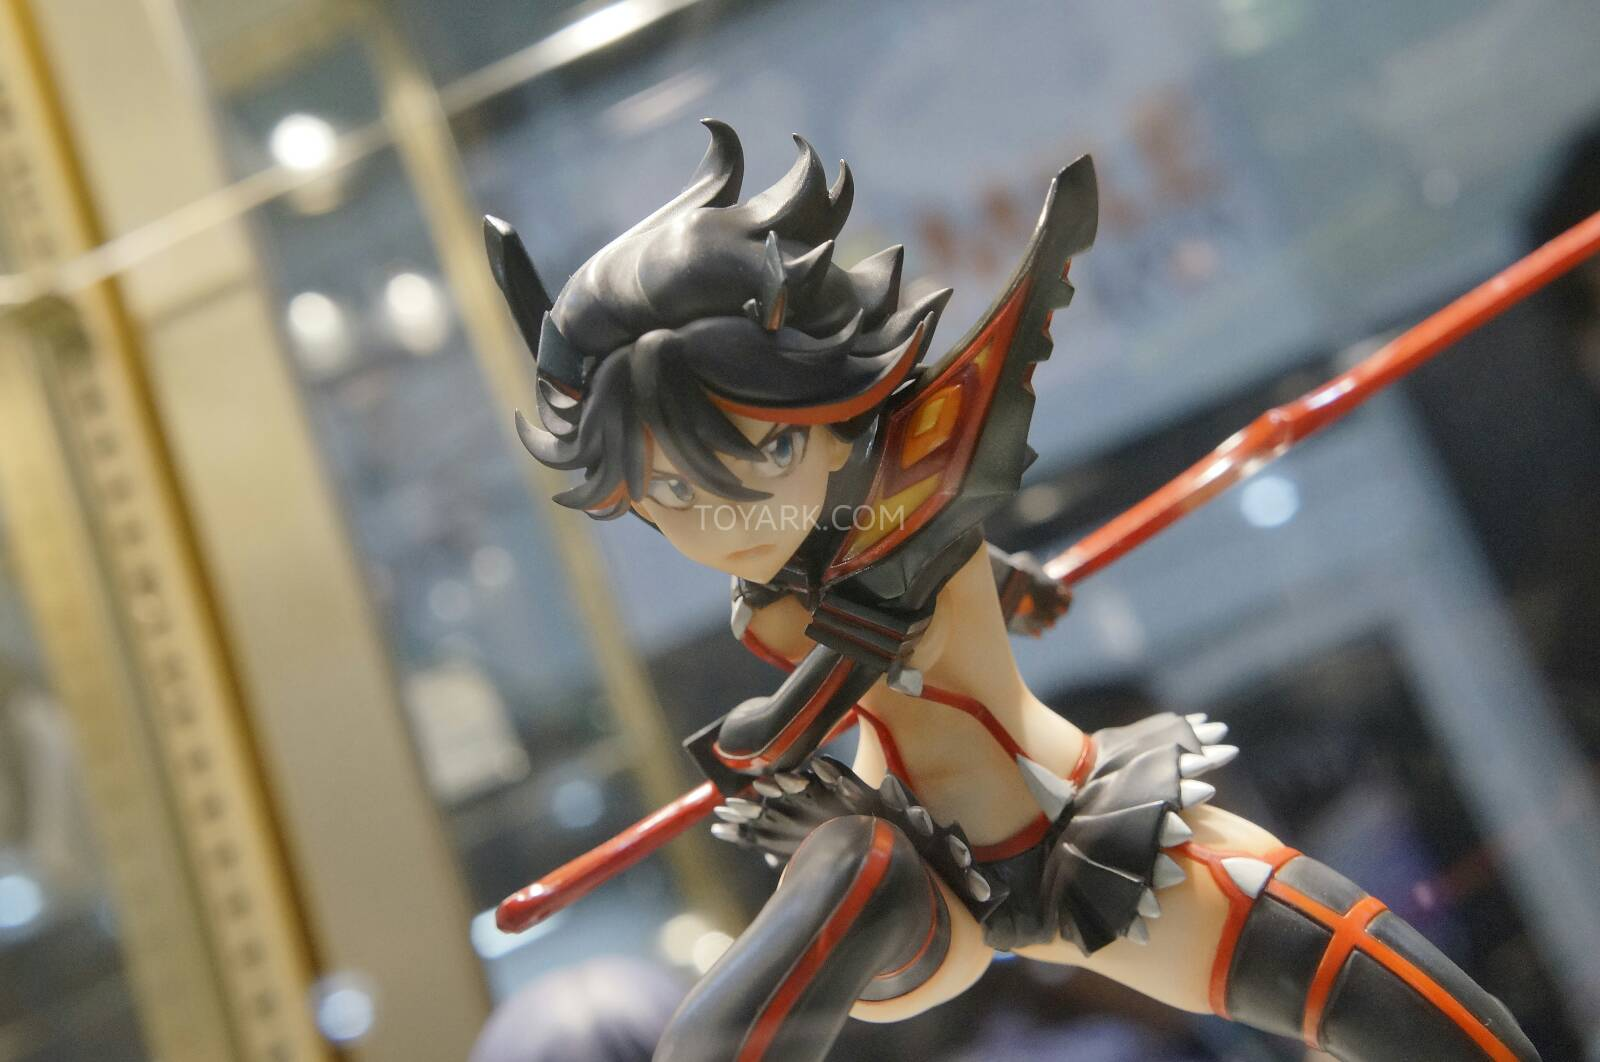 [EVENTO] Toy Fair 2014 - Good Smile Company / Max Factory / Phat Company / FREEing Toy-Fair-2014-Good-Smile-and-Max-Factory-Display-049